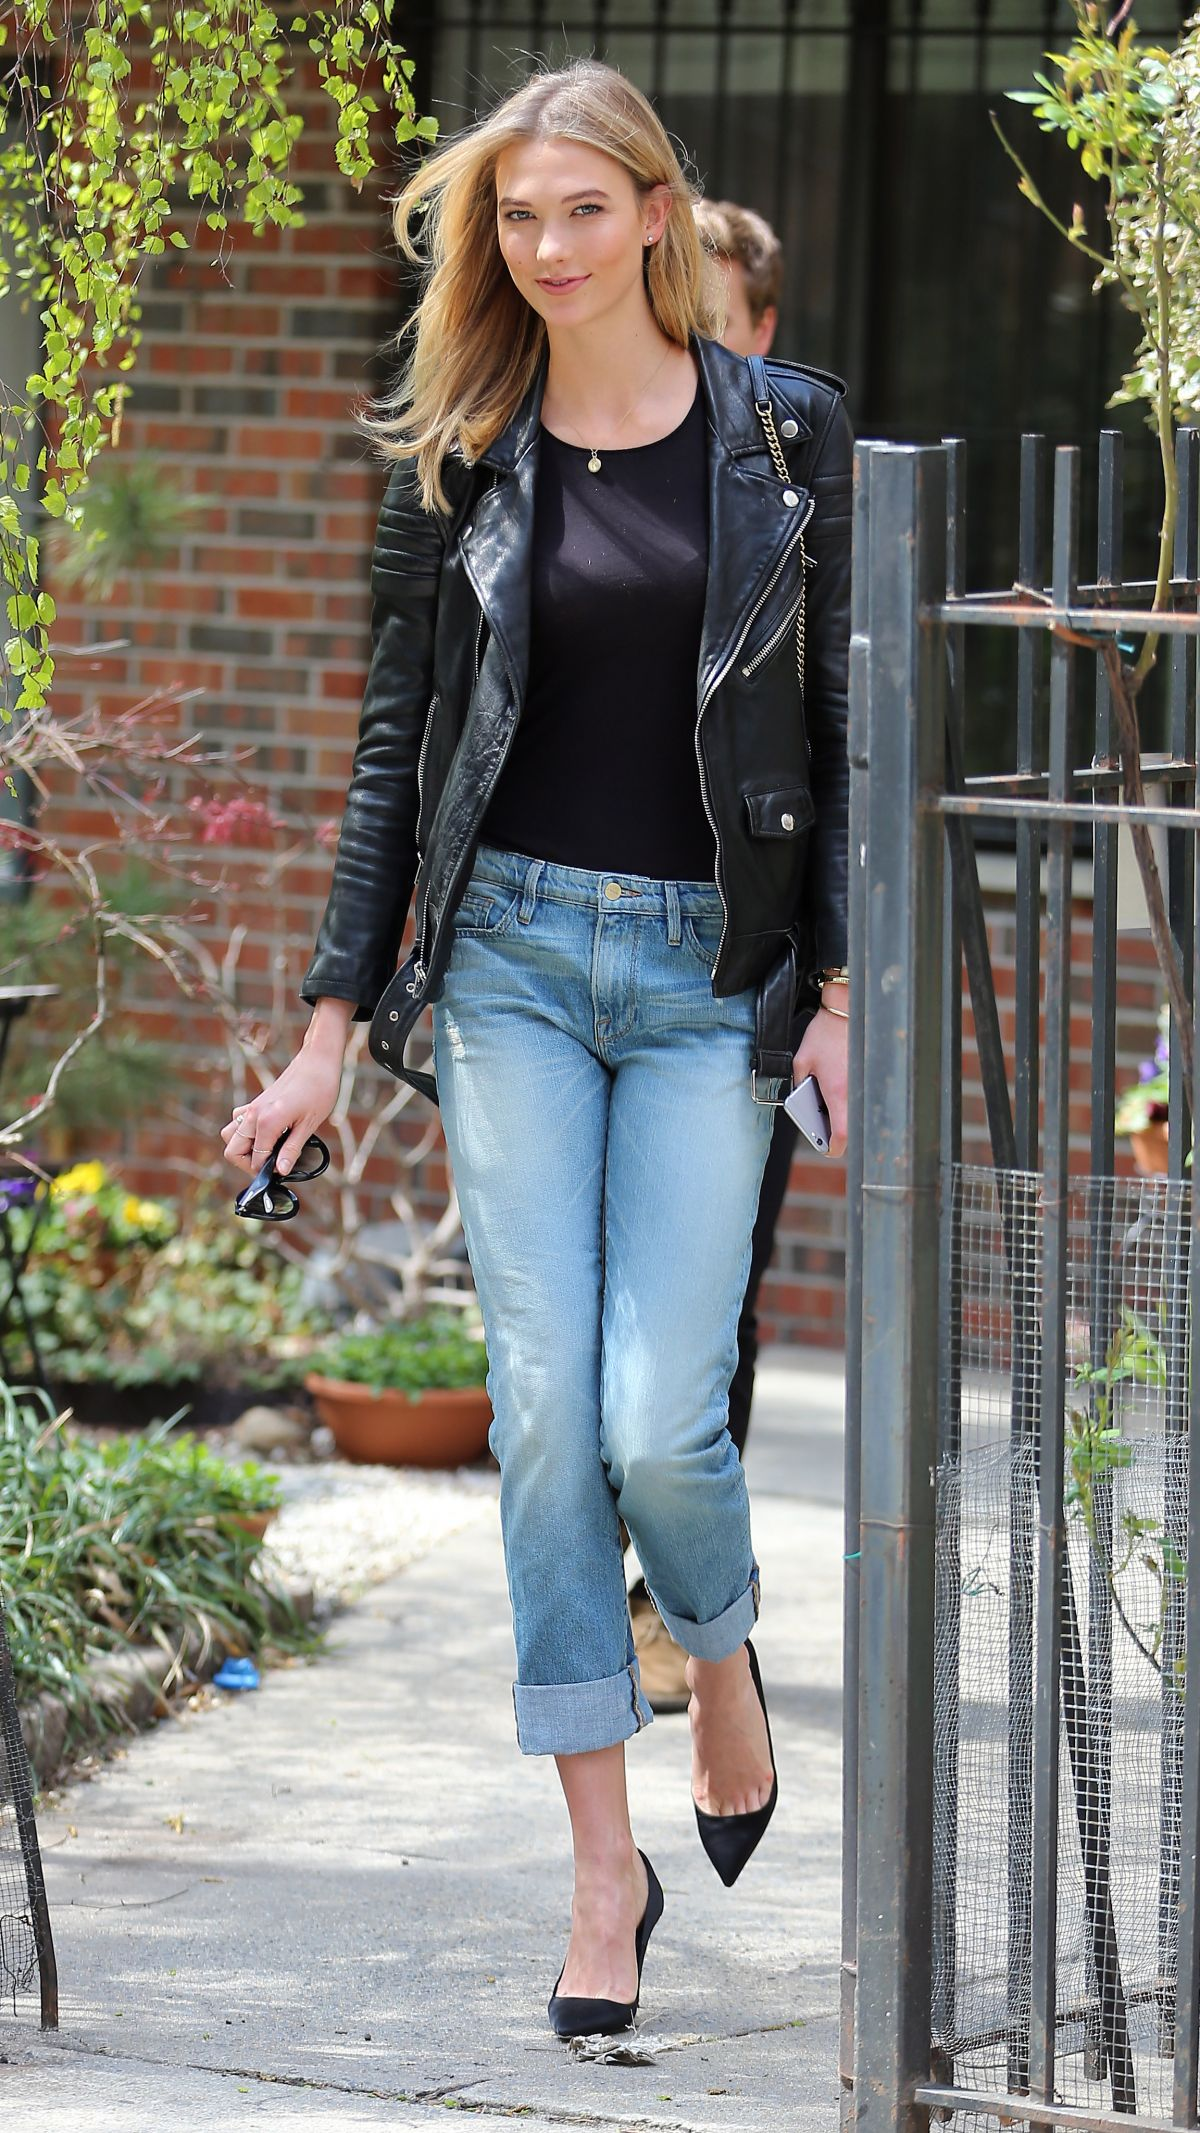 KARLIE KLOSS in Jeans Out and About in New York 04/24/2015